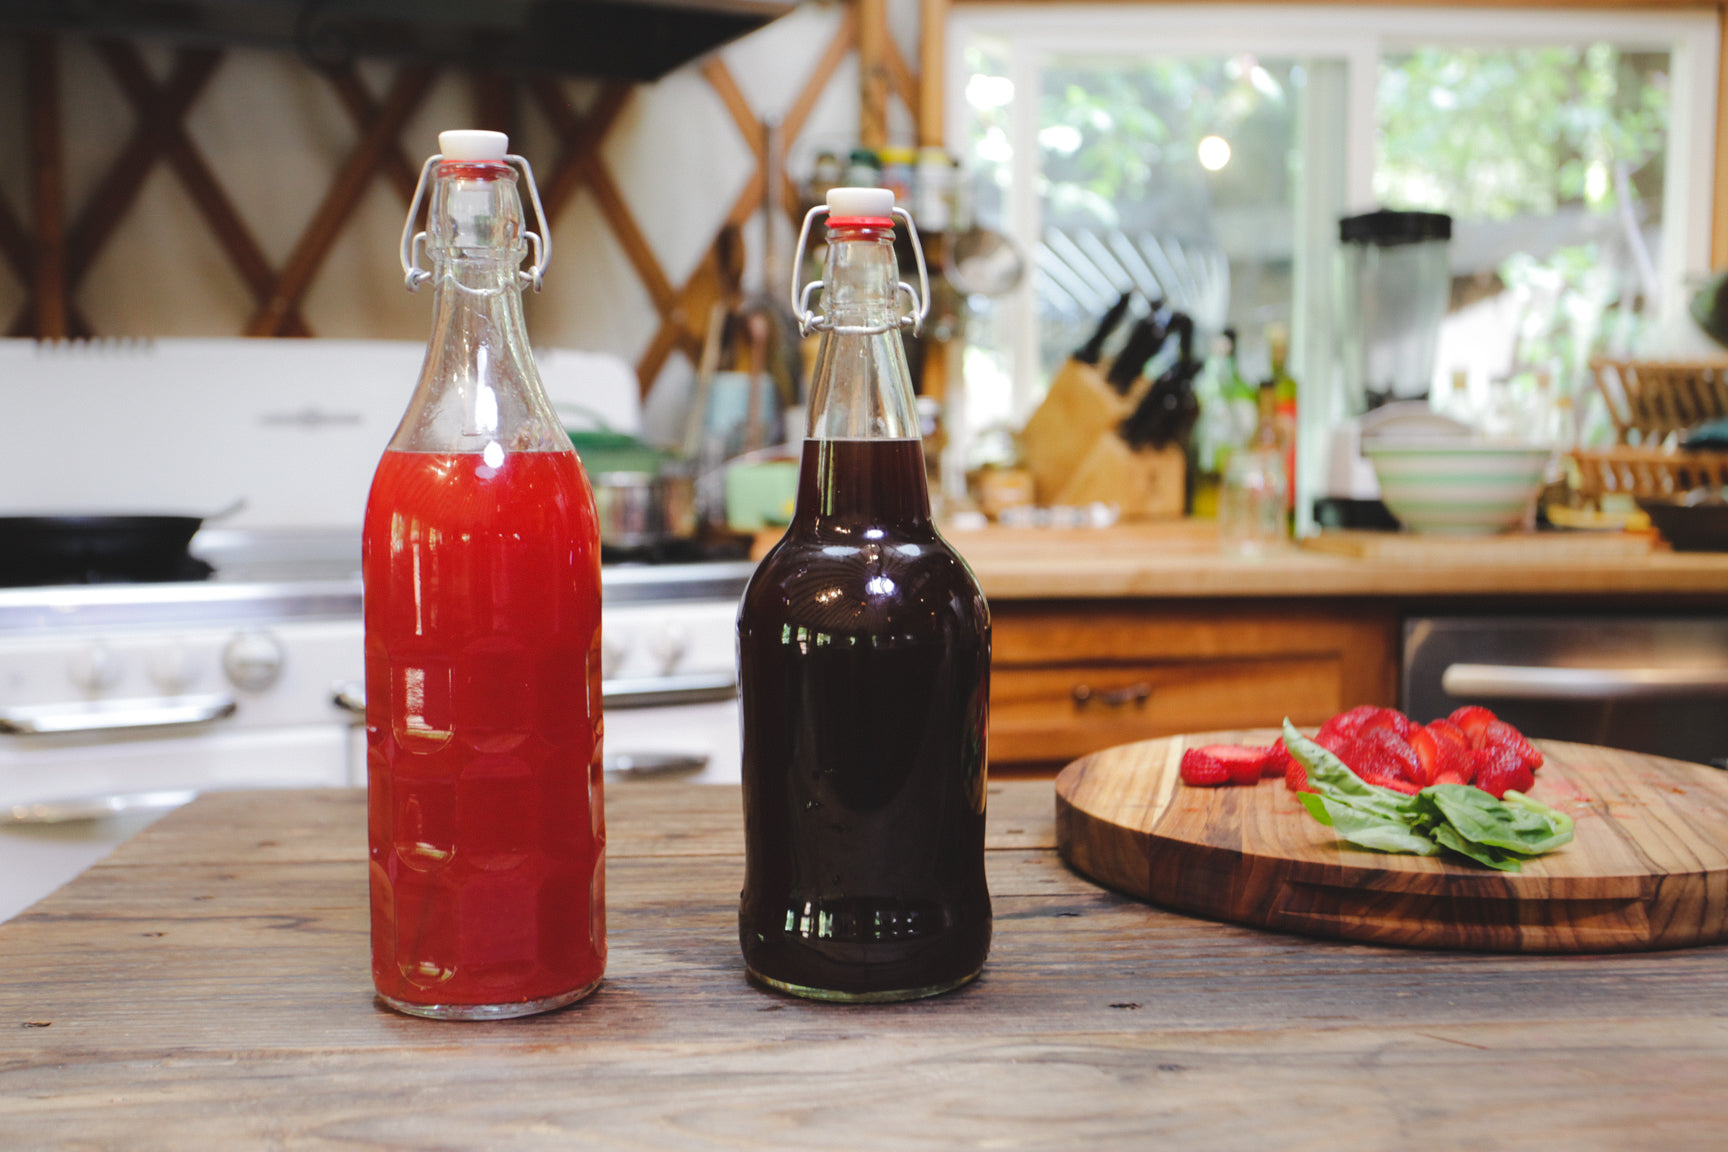 shrub beverage, how to make shrub sparkling drink